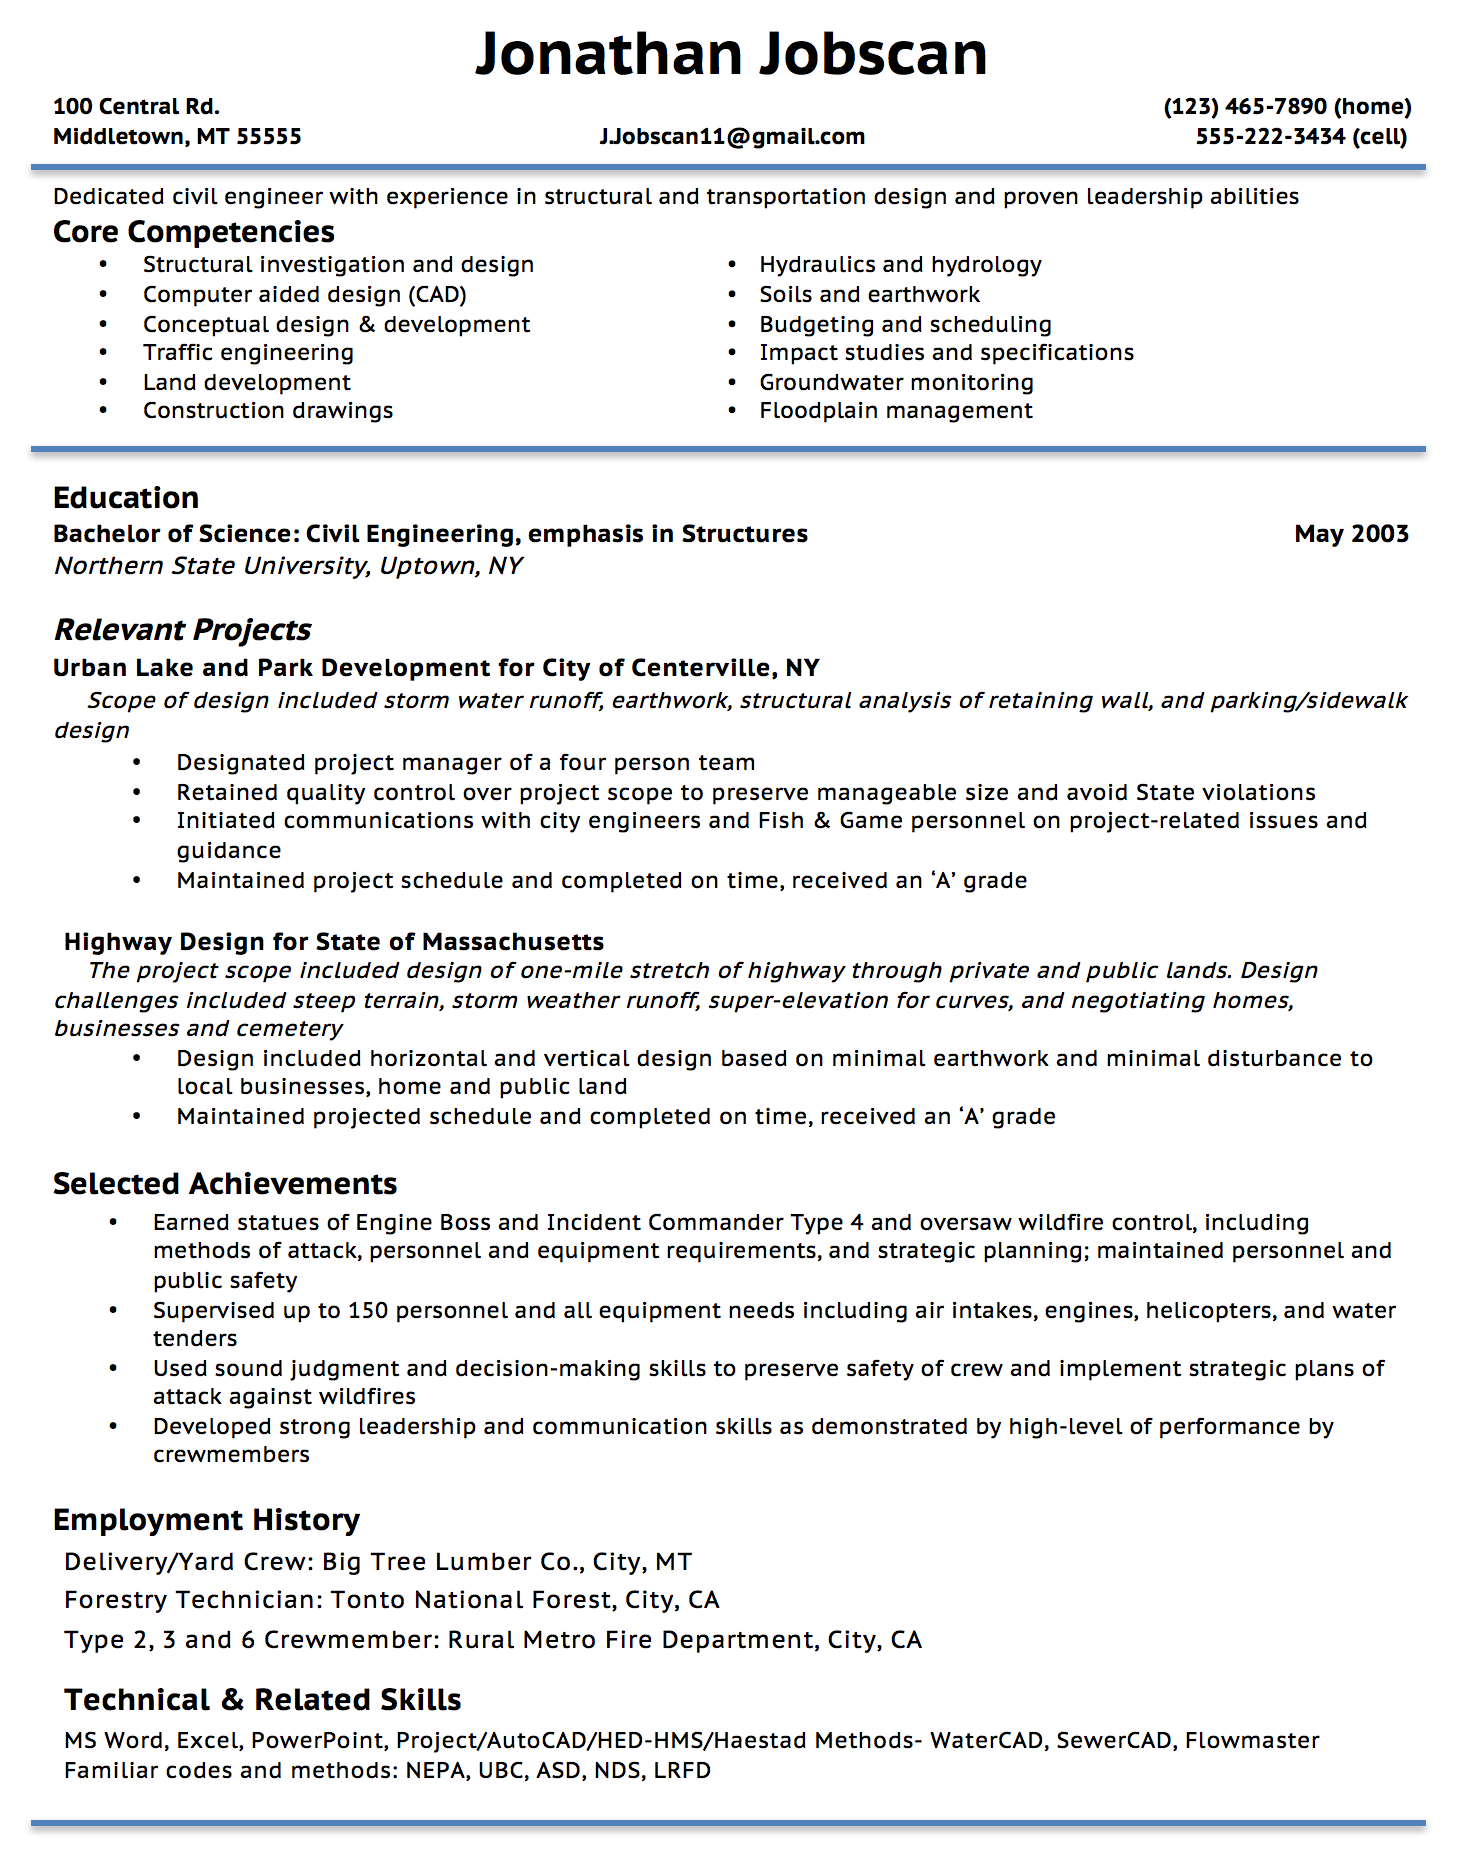 Opposenewapstandardsus  Fascinating Resume Writing Guide  Jobscan With Likable Example Of A Functional Resume Format With Attractive Student Resume Examples Also Teacher Resume Sample In Addition Best Resume Templates And Curriculum Vitae Vs Resume As Well As Write A Resume Additionally Latex Resume Template From Jobscanco With Opposenewapstandardsus  Likable Resume Writing Guide  Jobscan With Attractive Example Of A Functional Resume Format And Fascinating Student Resume Examples Also Teacher Resume Sample In Addition Best Resume Templates From Jobscanco